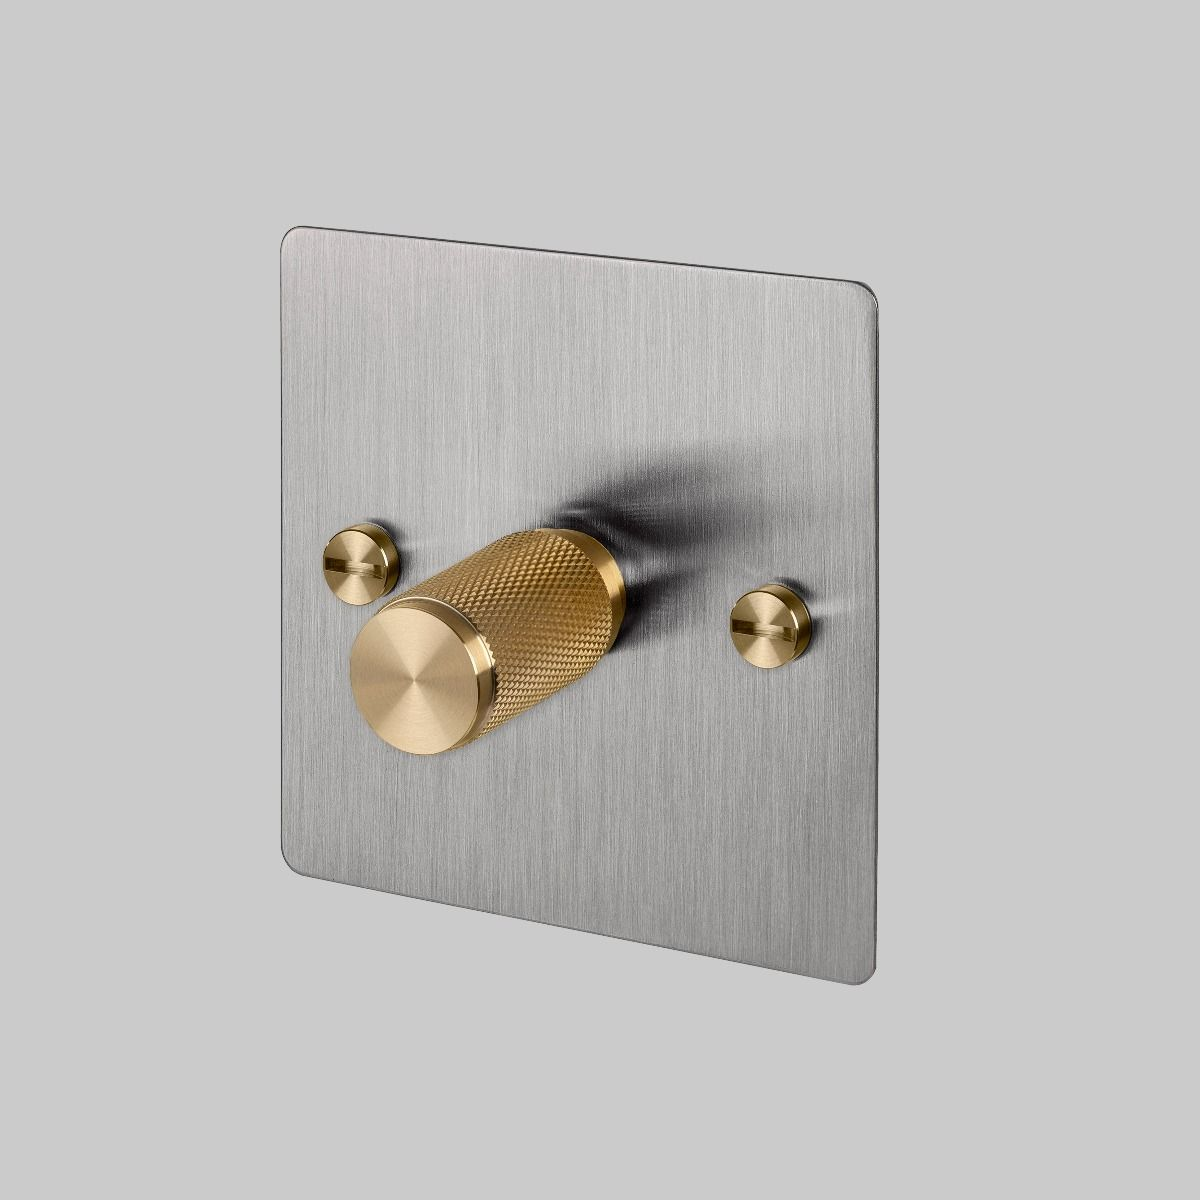 Buster + Punch Dimmer Switch 1G